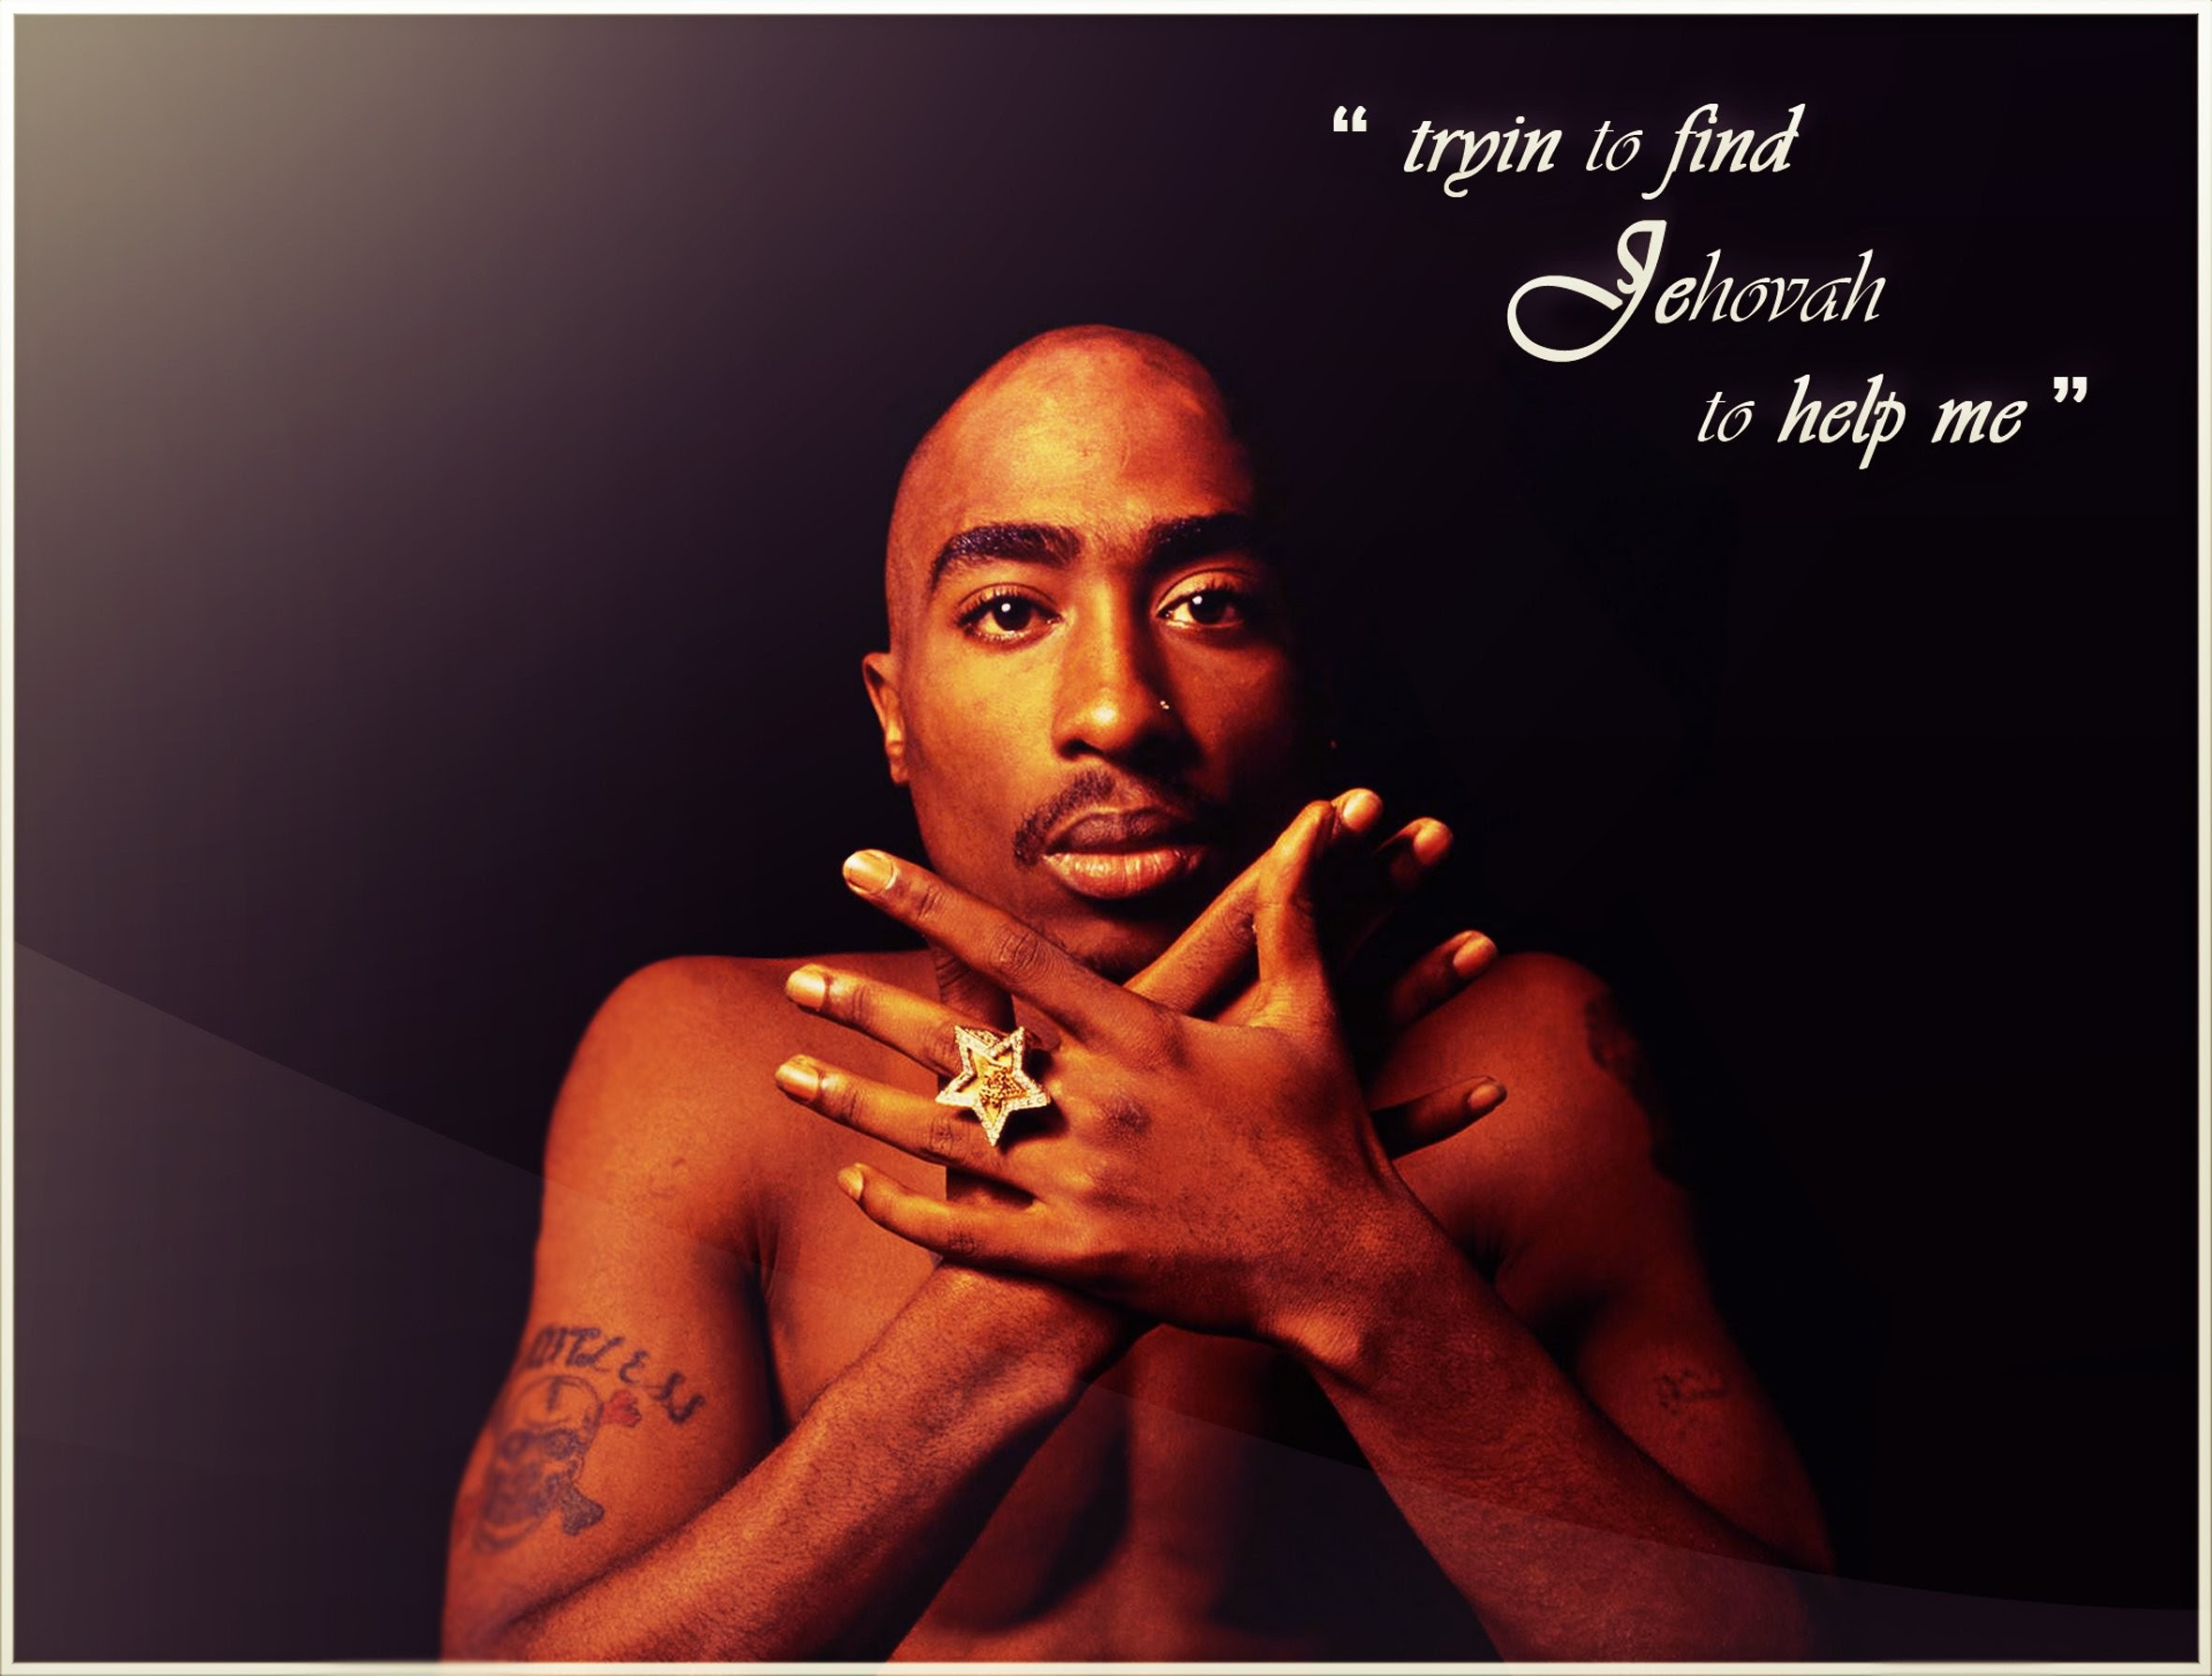 2Pac Wallpaper for iPhone (65  images)